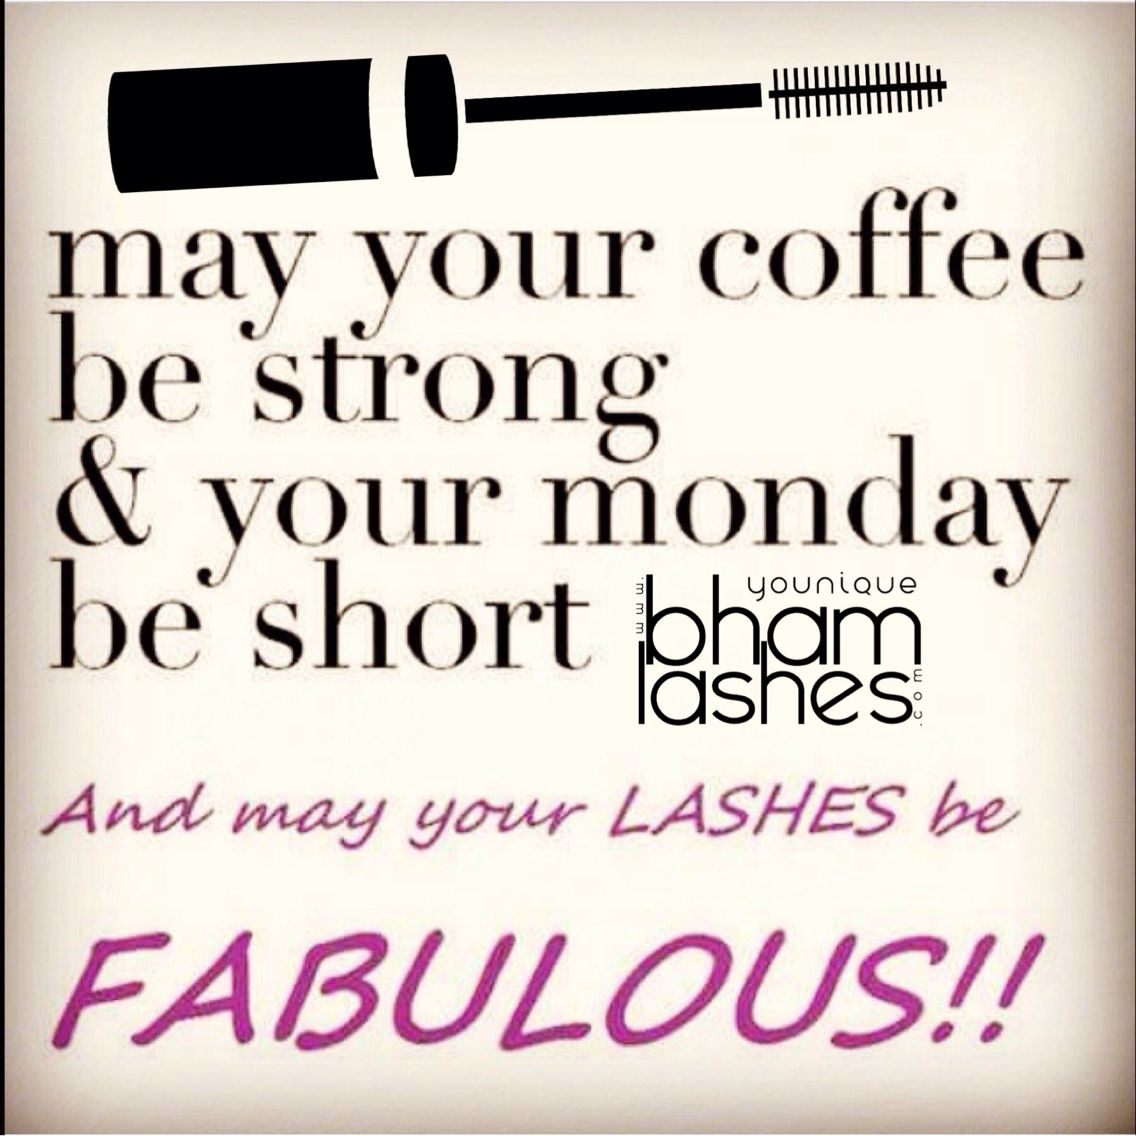 May your coffee be strong, and your Monday be short! Always! #bhamlashes #lisakathleenraines #lisakrhb xxoo